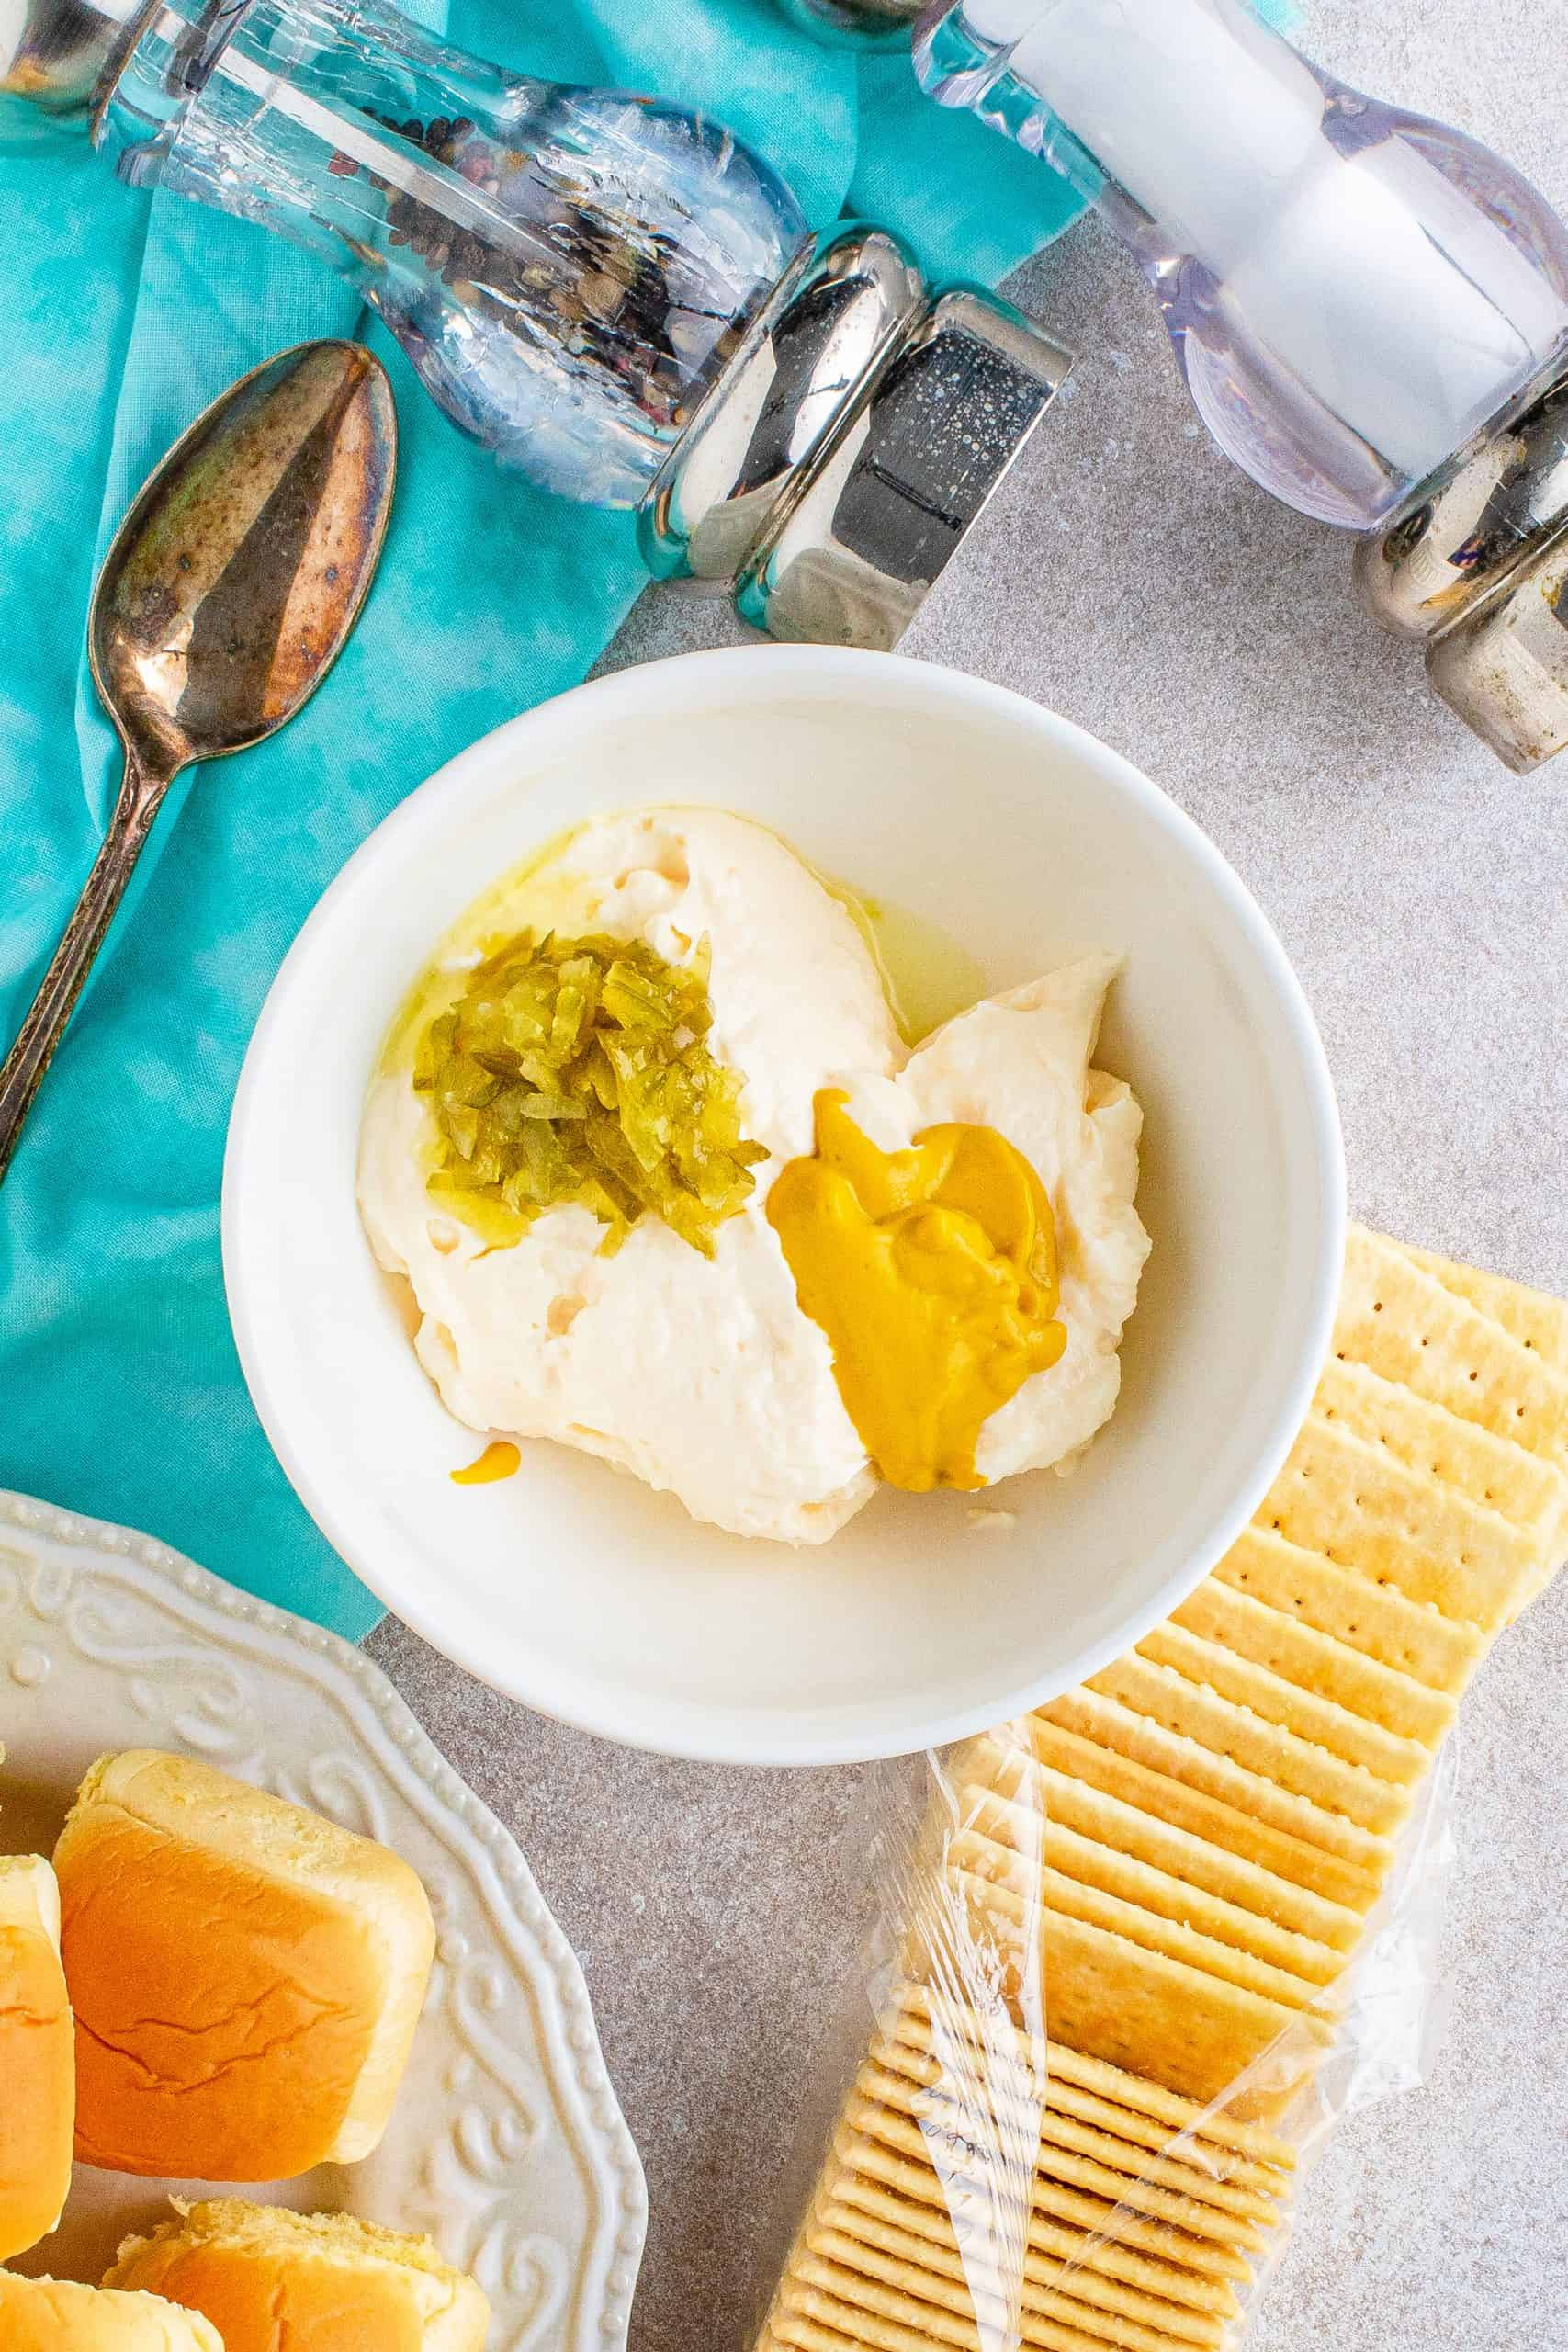 mayonnaise, mustard and sweet pickle relish in a medium white bowl